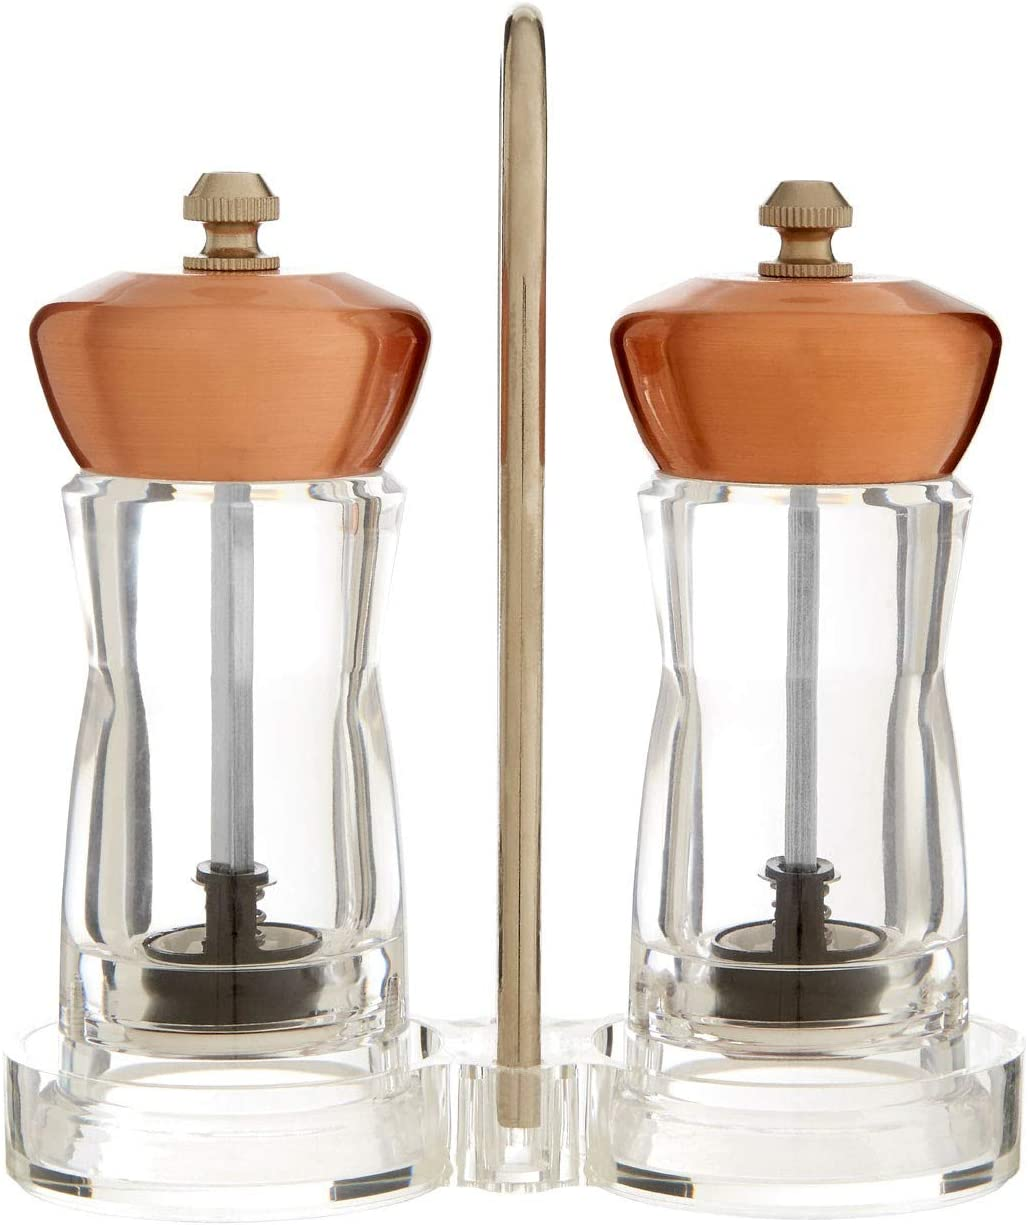 Salt And Pepper Copper Mill Set With Stand For Home Kitchen Food Amazon Co Uk Home Kitchen